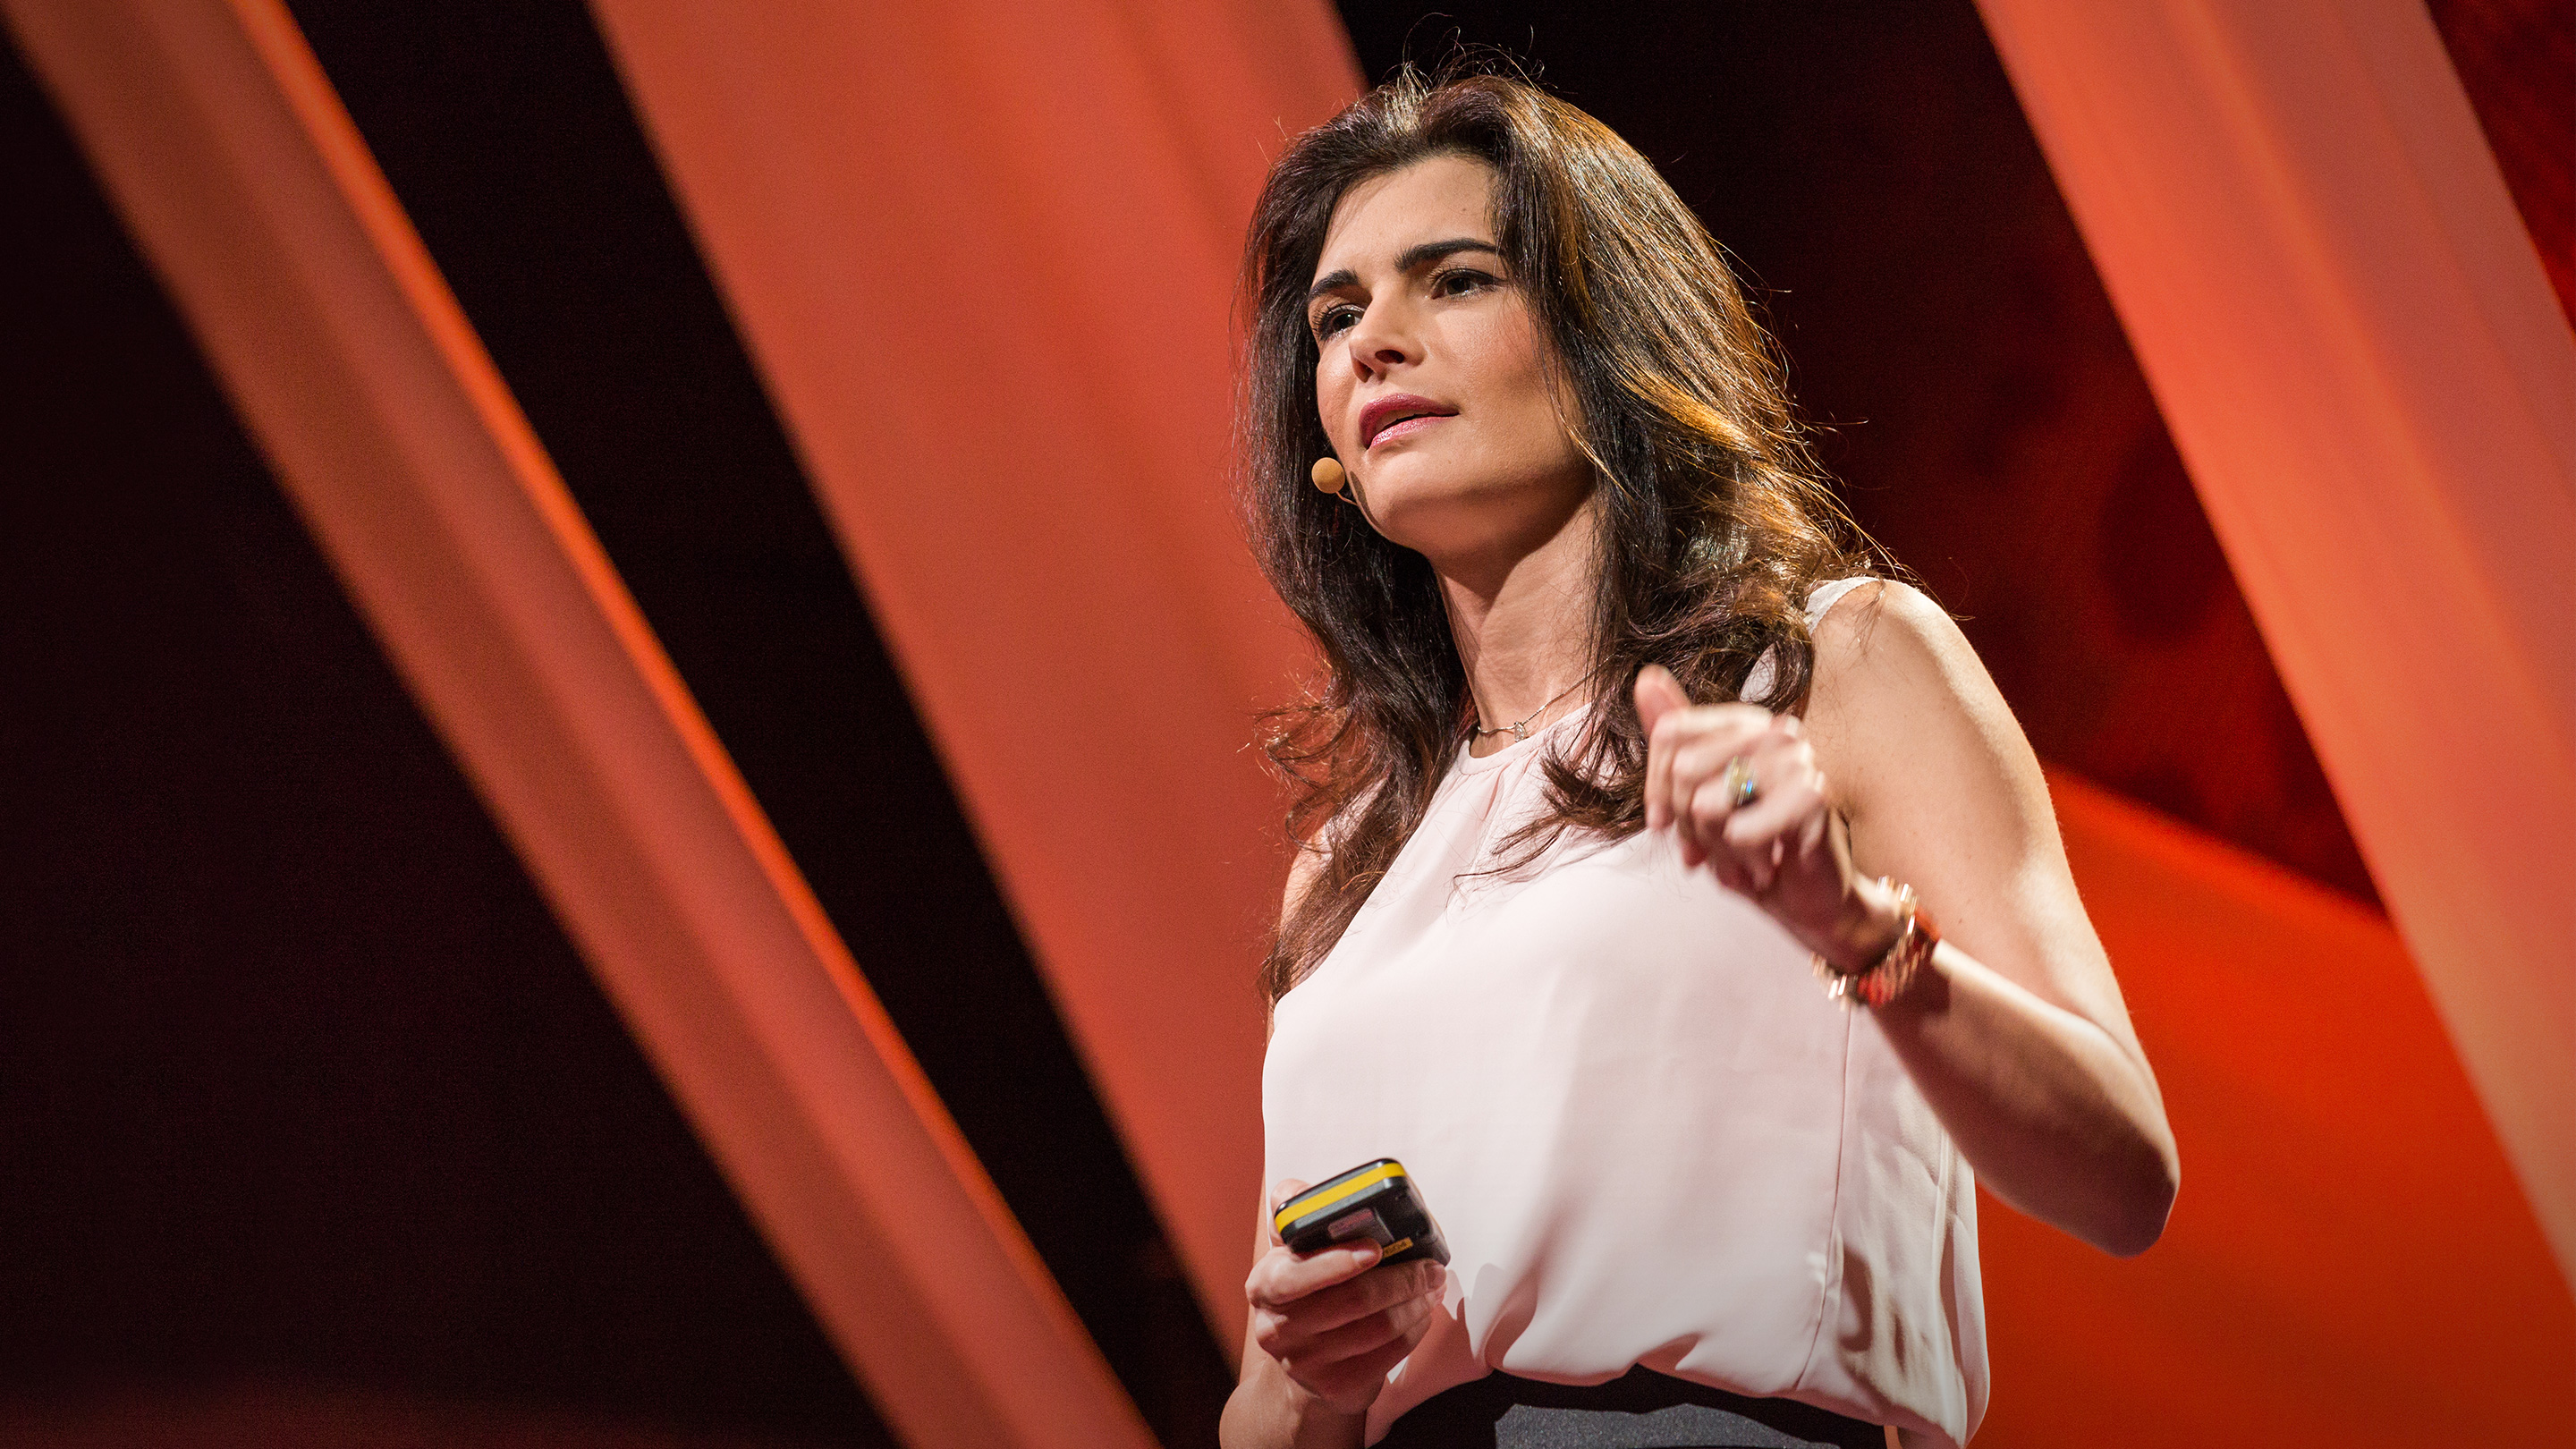 Leila Hoteit: 3 lessons on success from an Arab businesswoman thumbnail